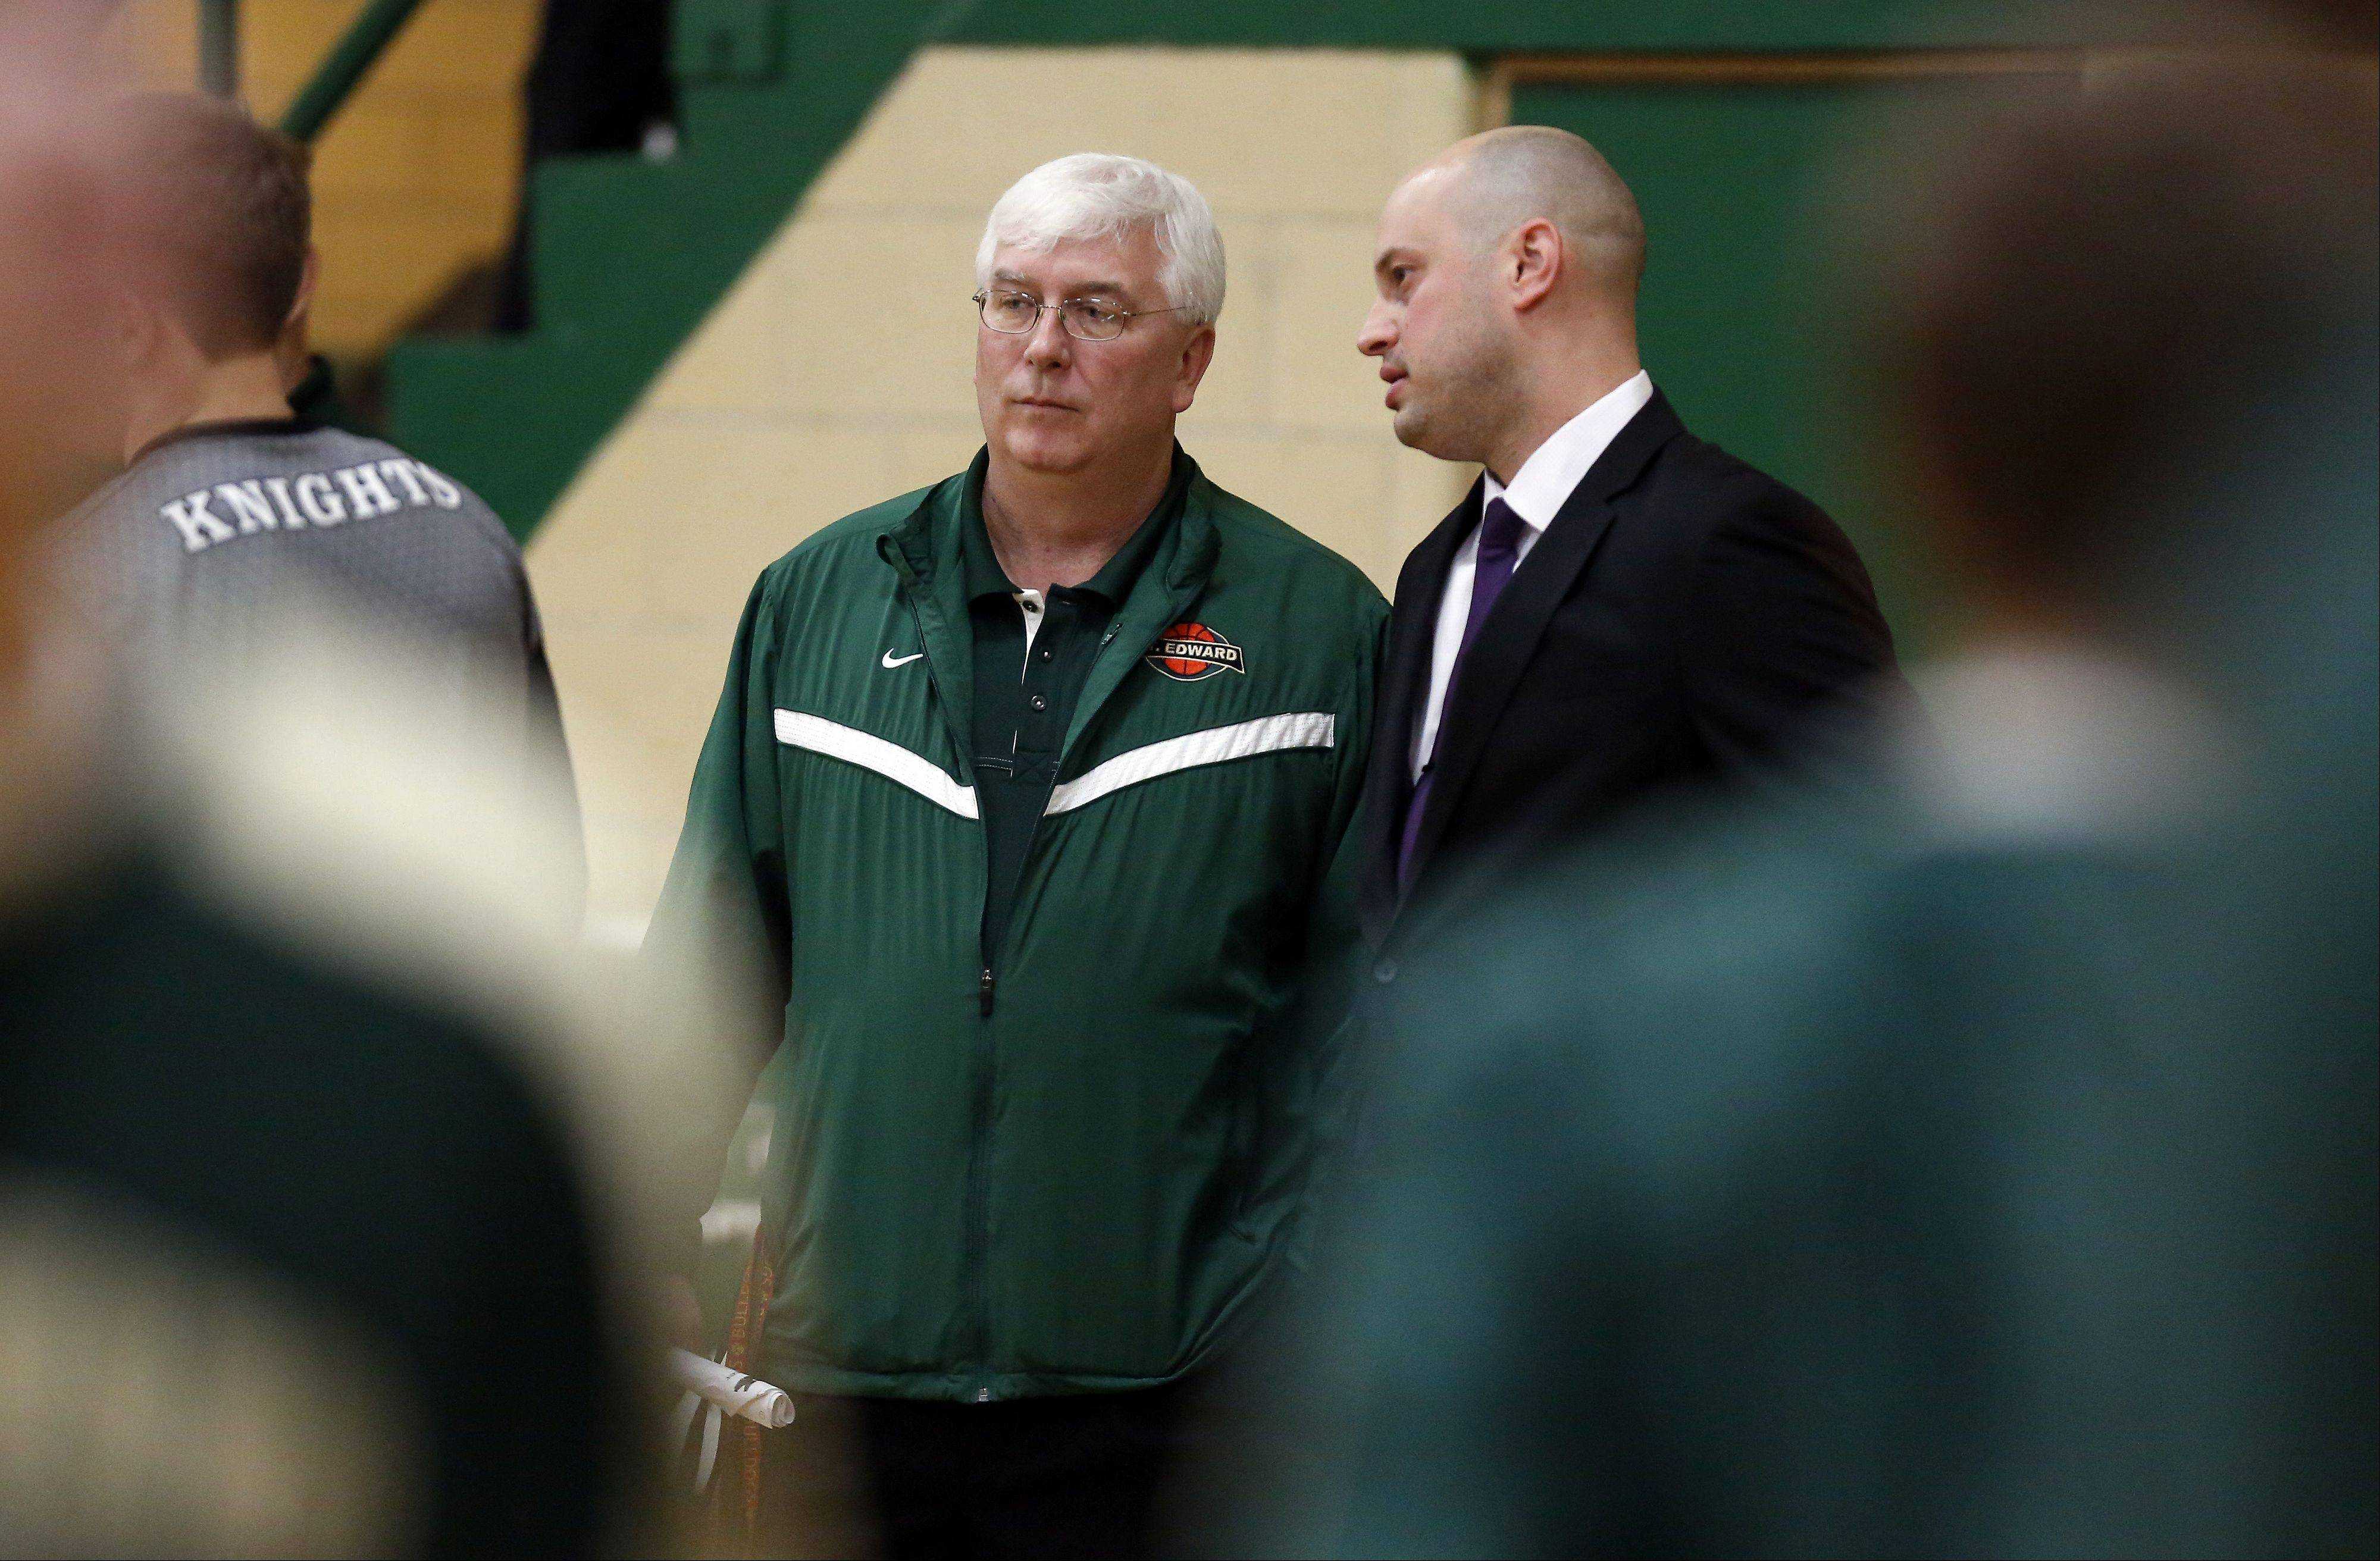 Former St. Edward player and current Kaneland coach Brian Johnson talks to St. Edward coach P.J. White prior to the Kaneland at St. Edward boys basketball game Friday in Elgin.